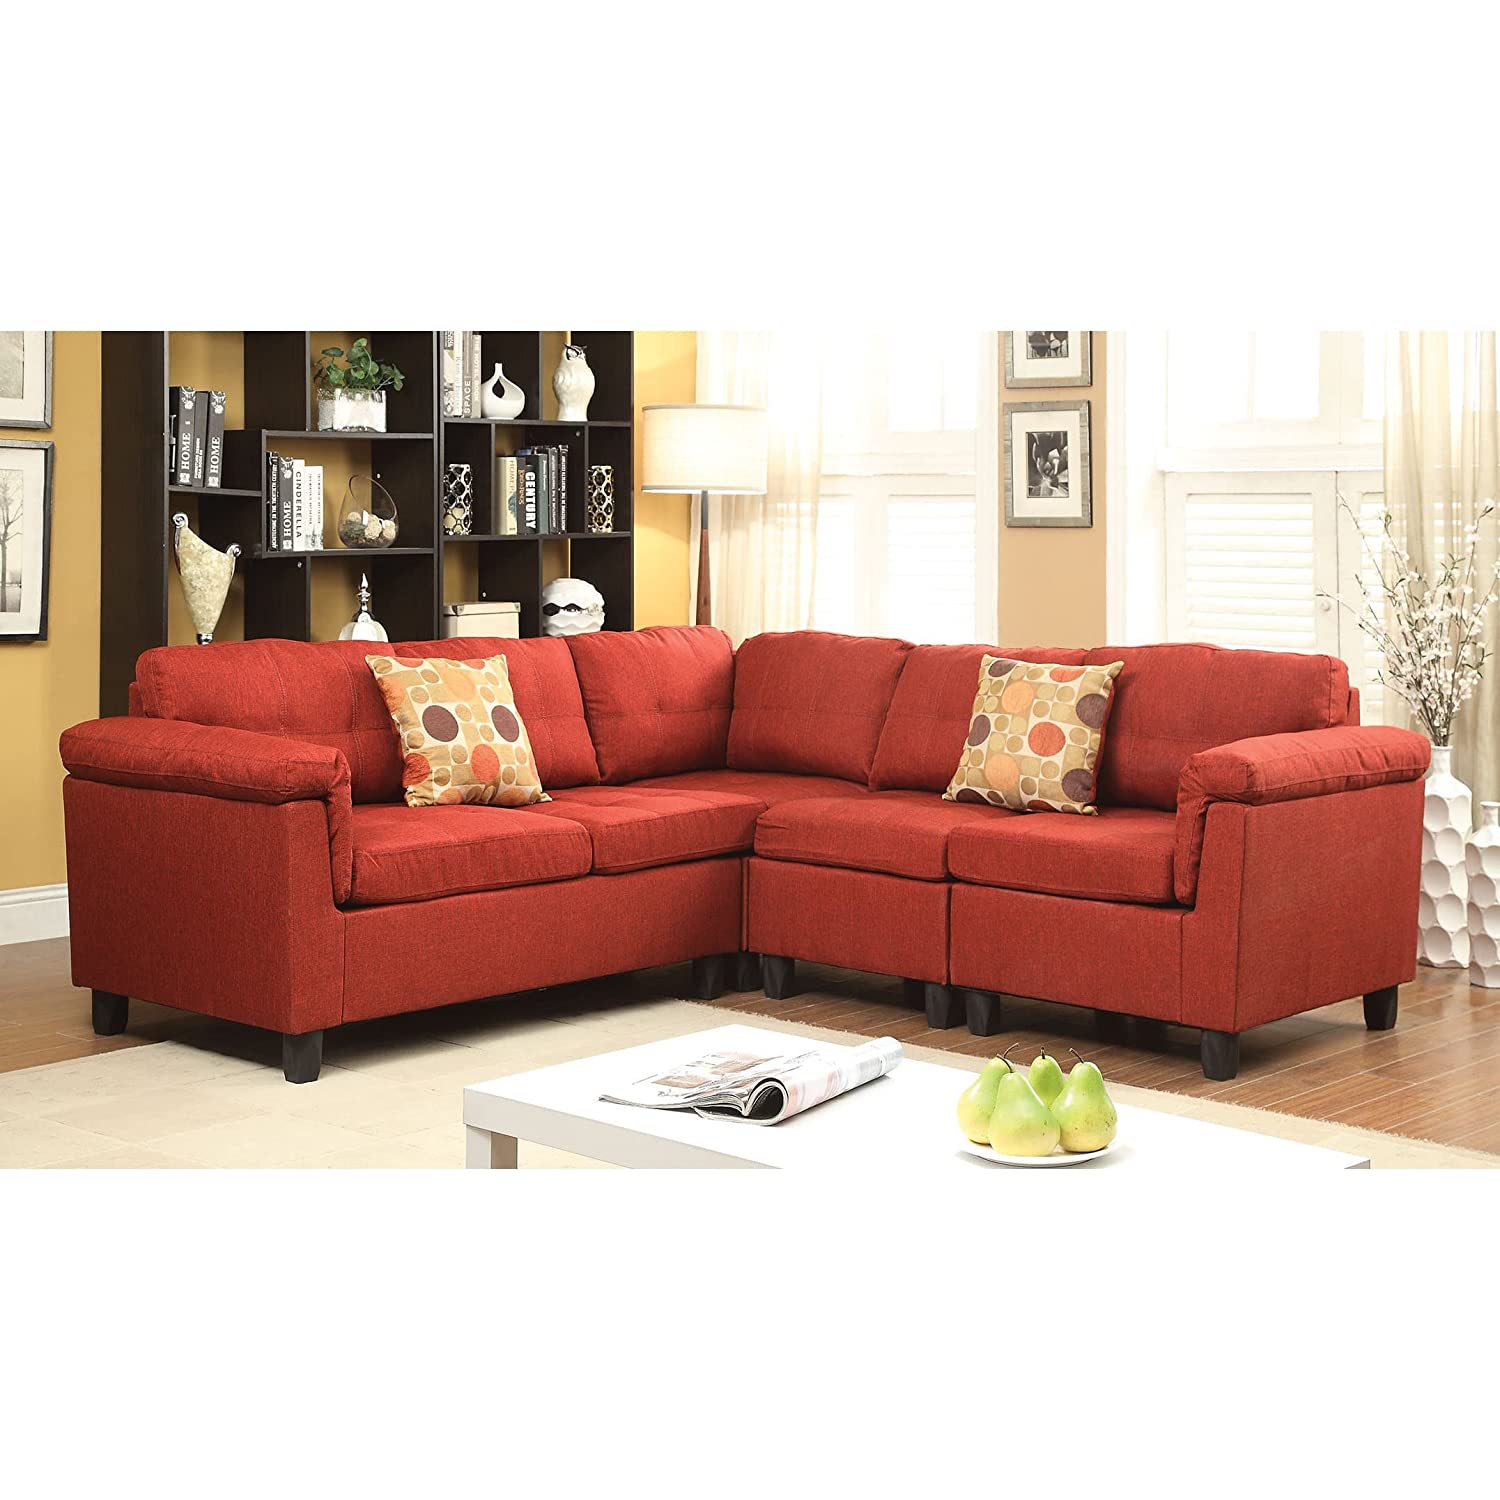 Amazon ACME Furniture Cleavon Sectional Sofa with 2